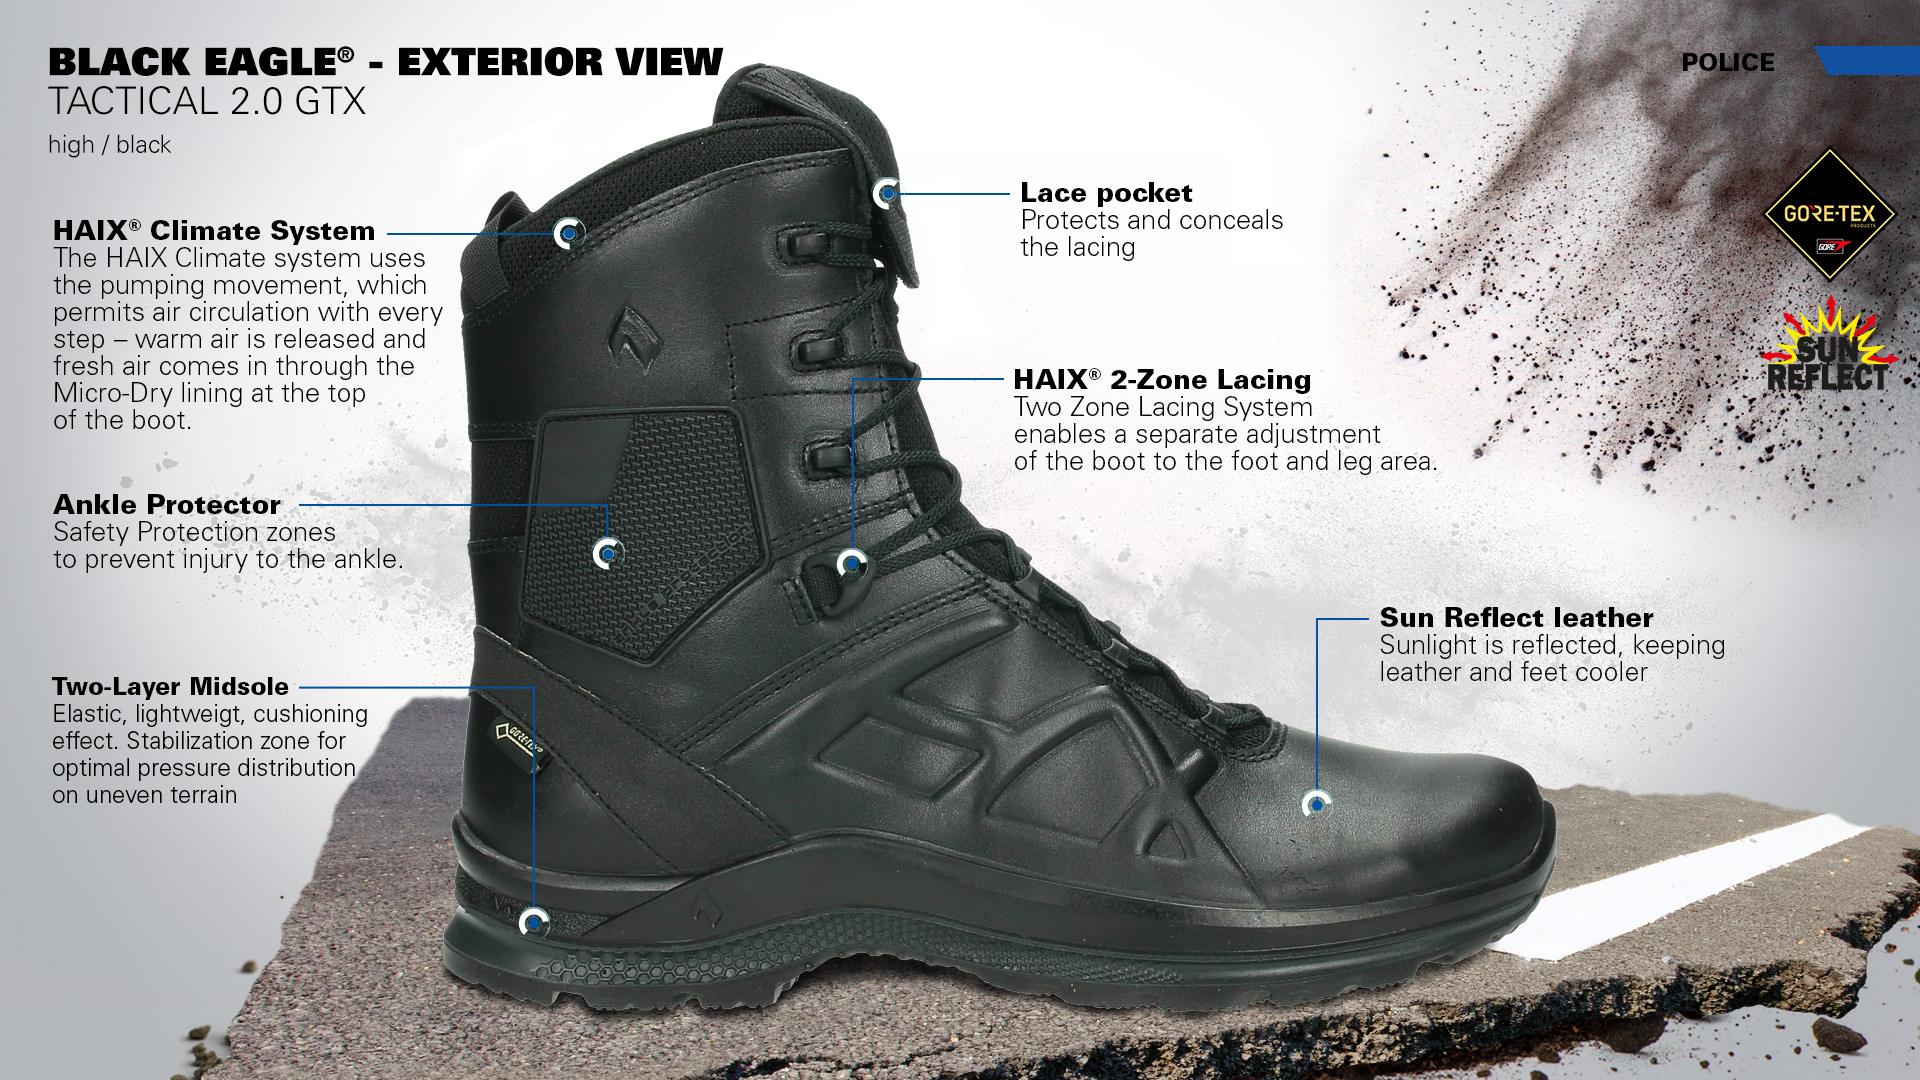 Afbeeldingsresultaat voor BLACK EAGLE TACTICAL 2.0 HIGH GTX